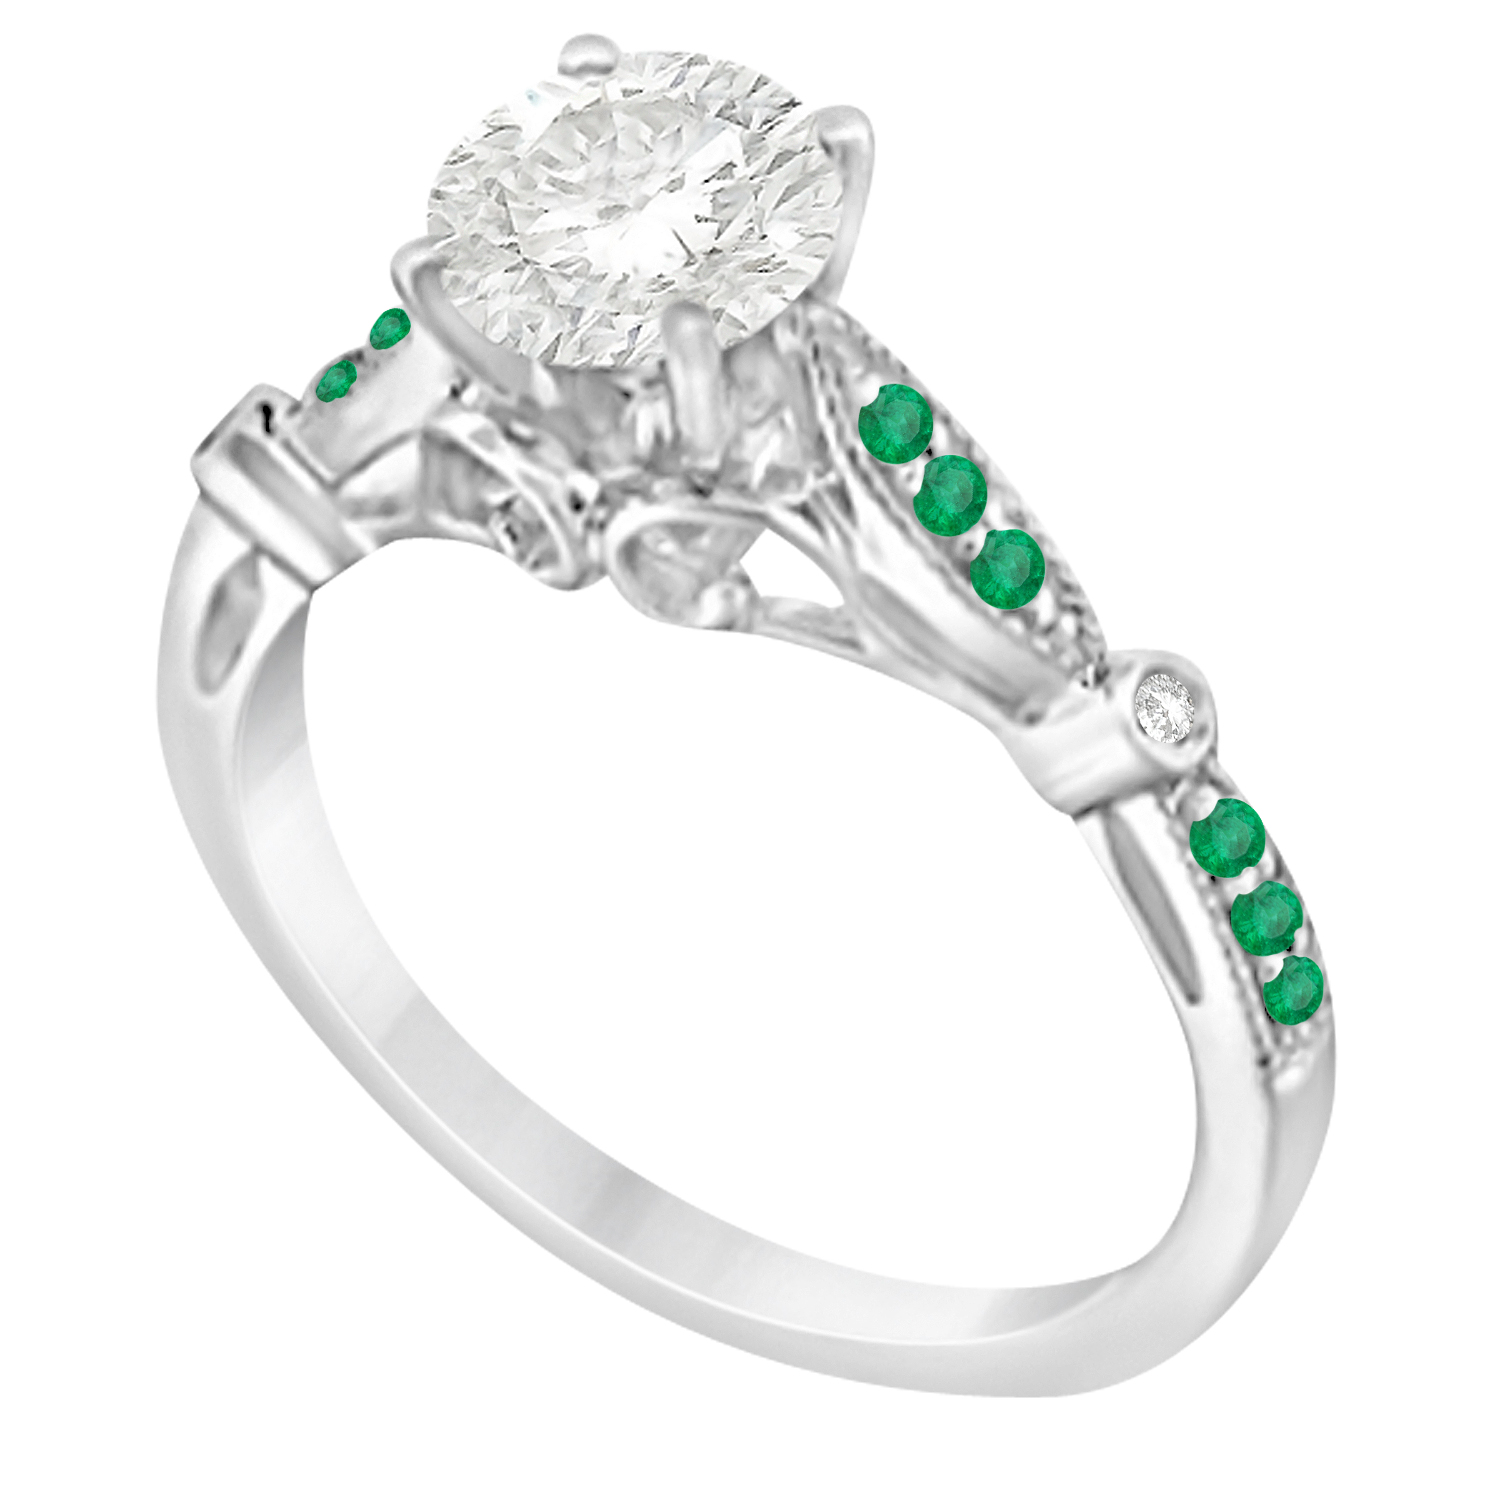 Marquise & Dot Emerald Vintage Engagement Ring 14k White Gold 0.13ct